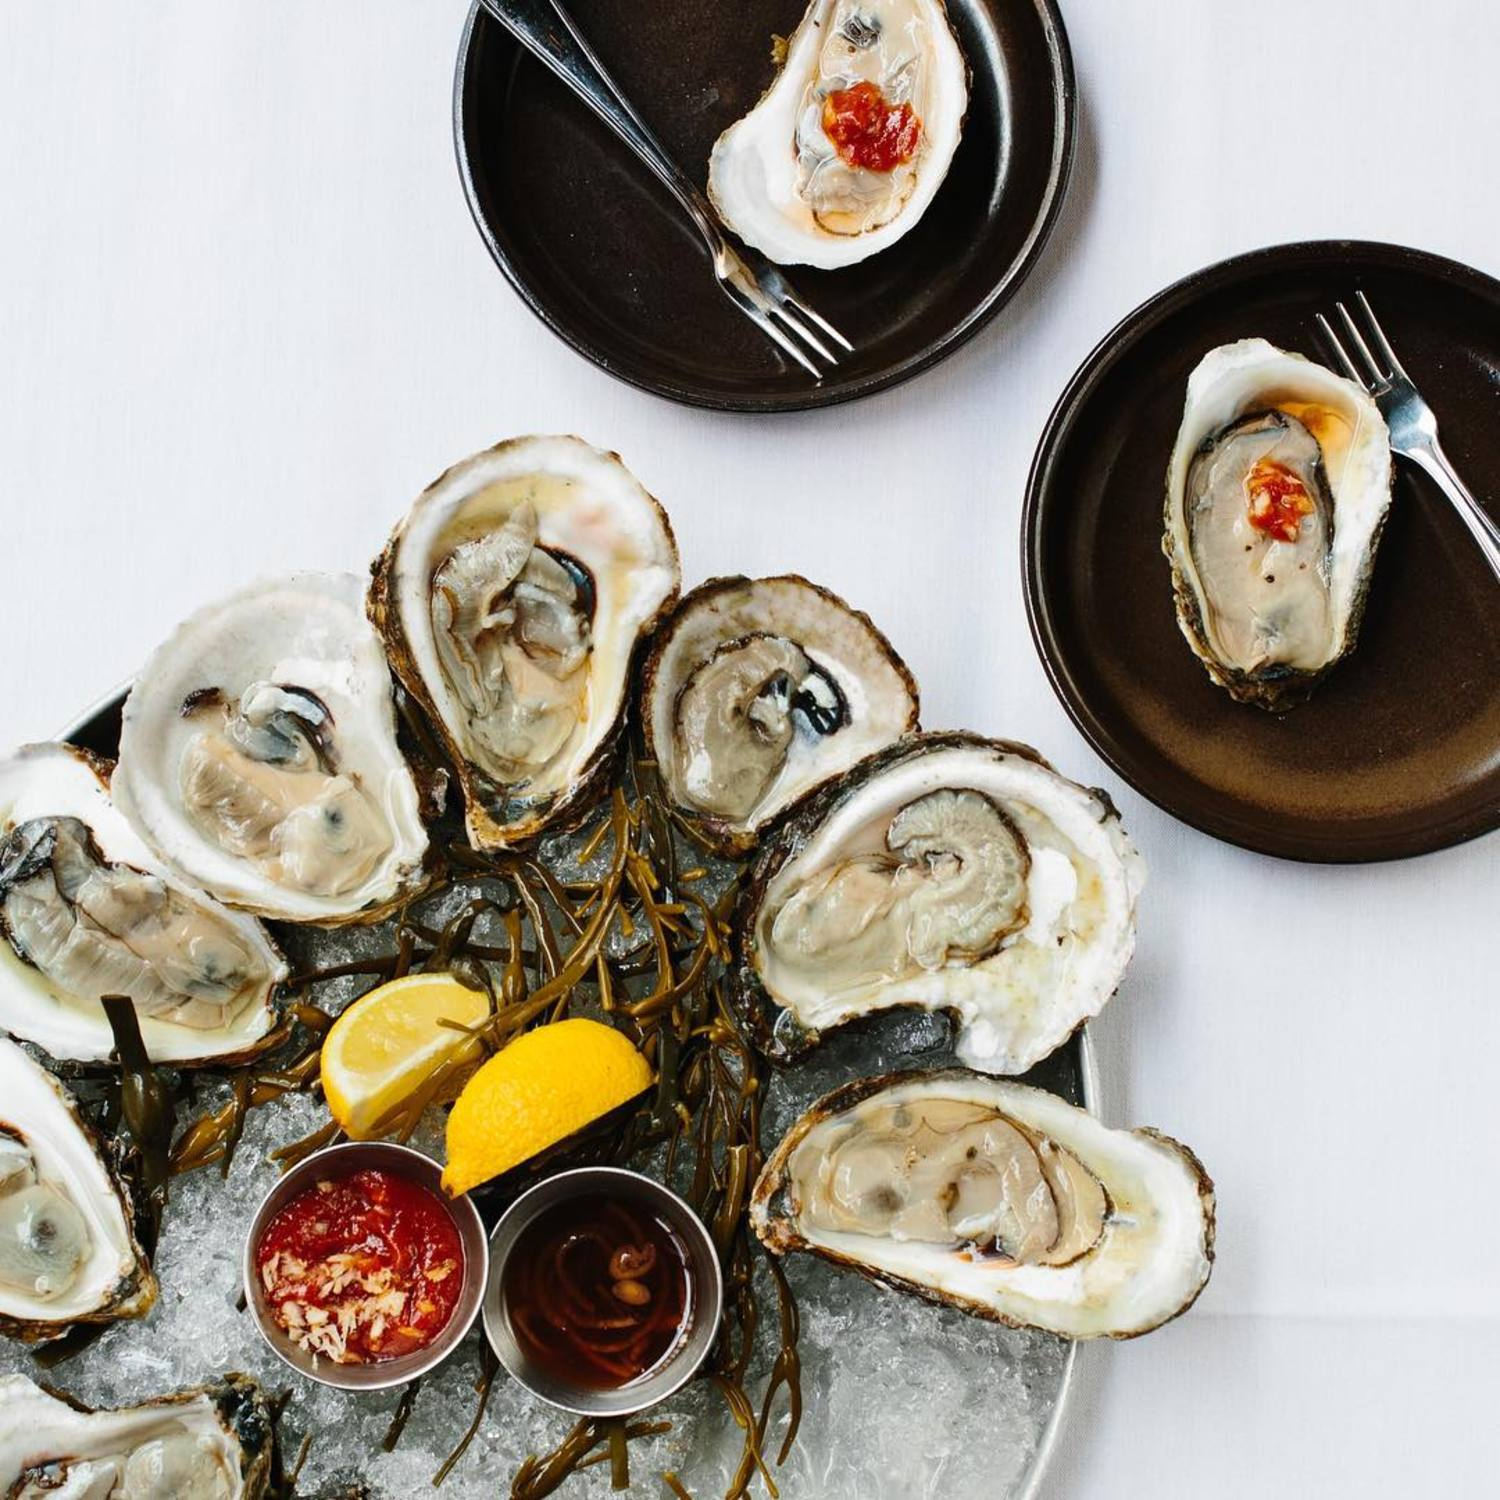 Come in for HH $1 oysters! It's 4pm-10:30pm daily in the bar area. #flatiron #nyc #barnjoo #happyhour #dollaroysters #oysters